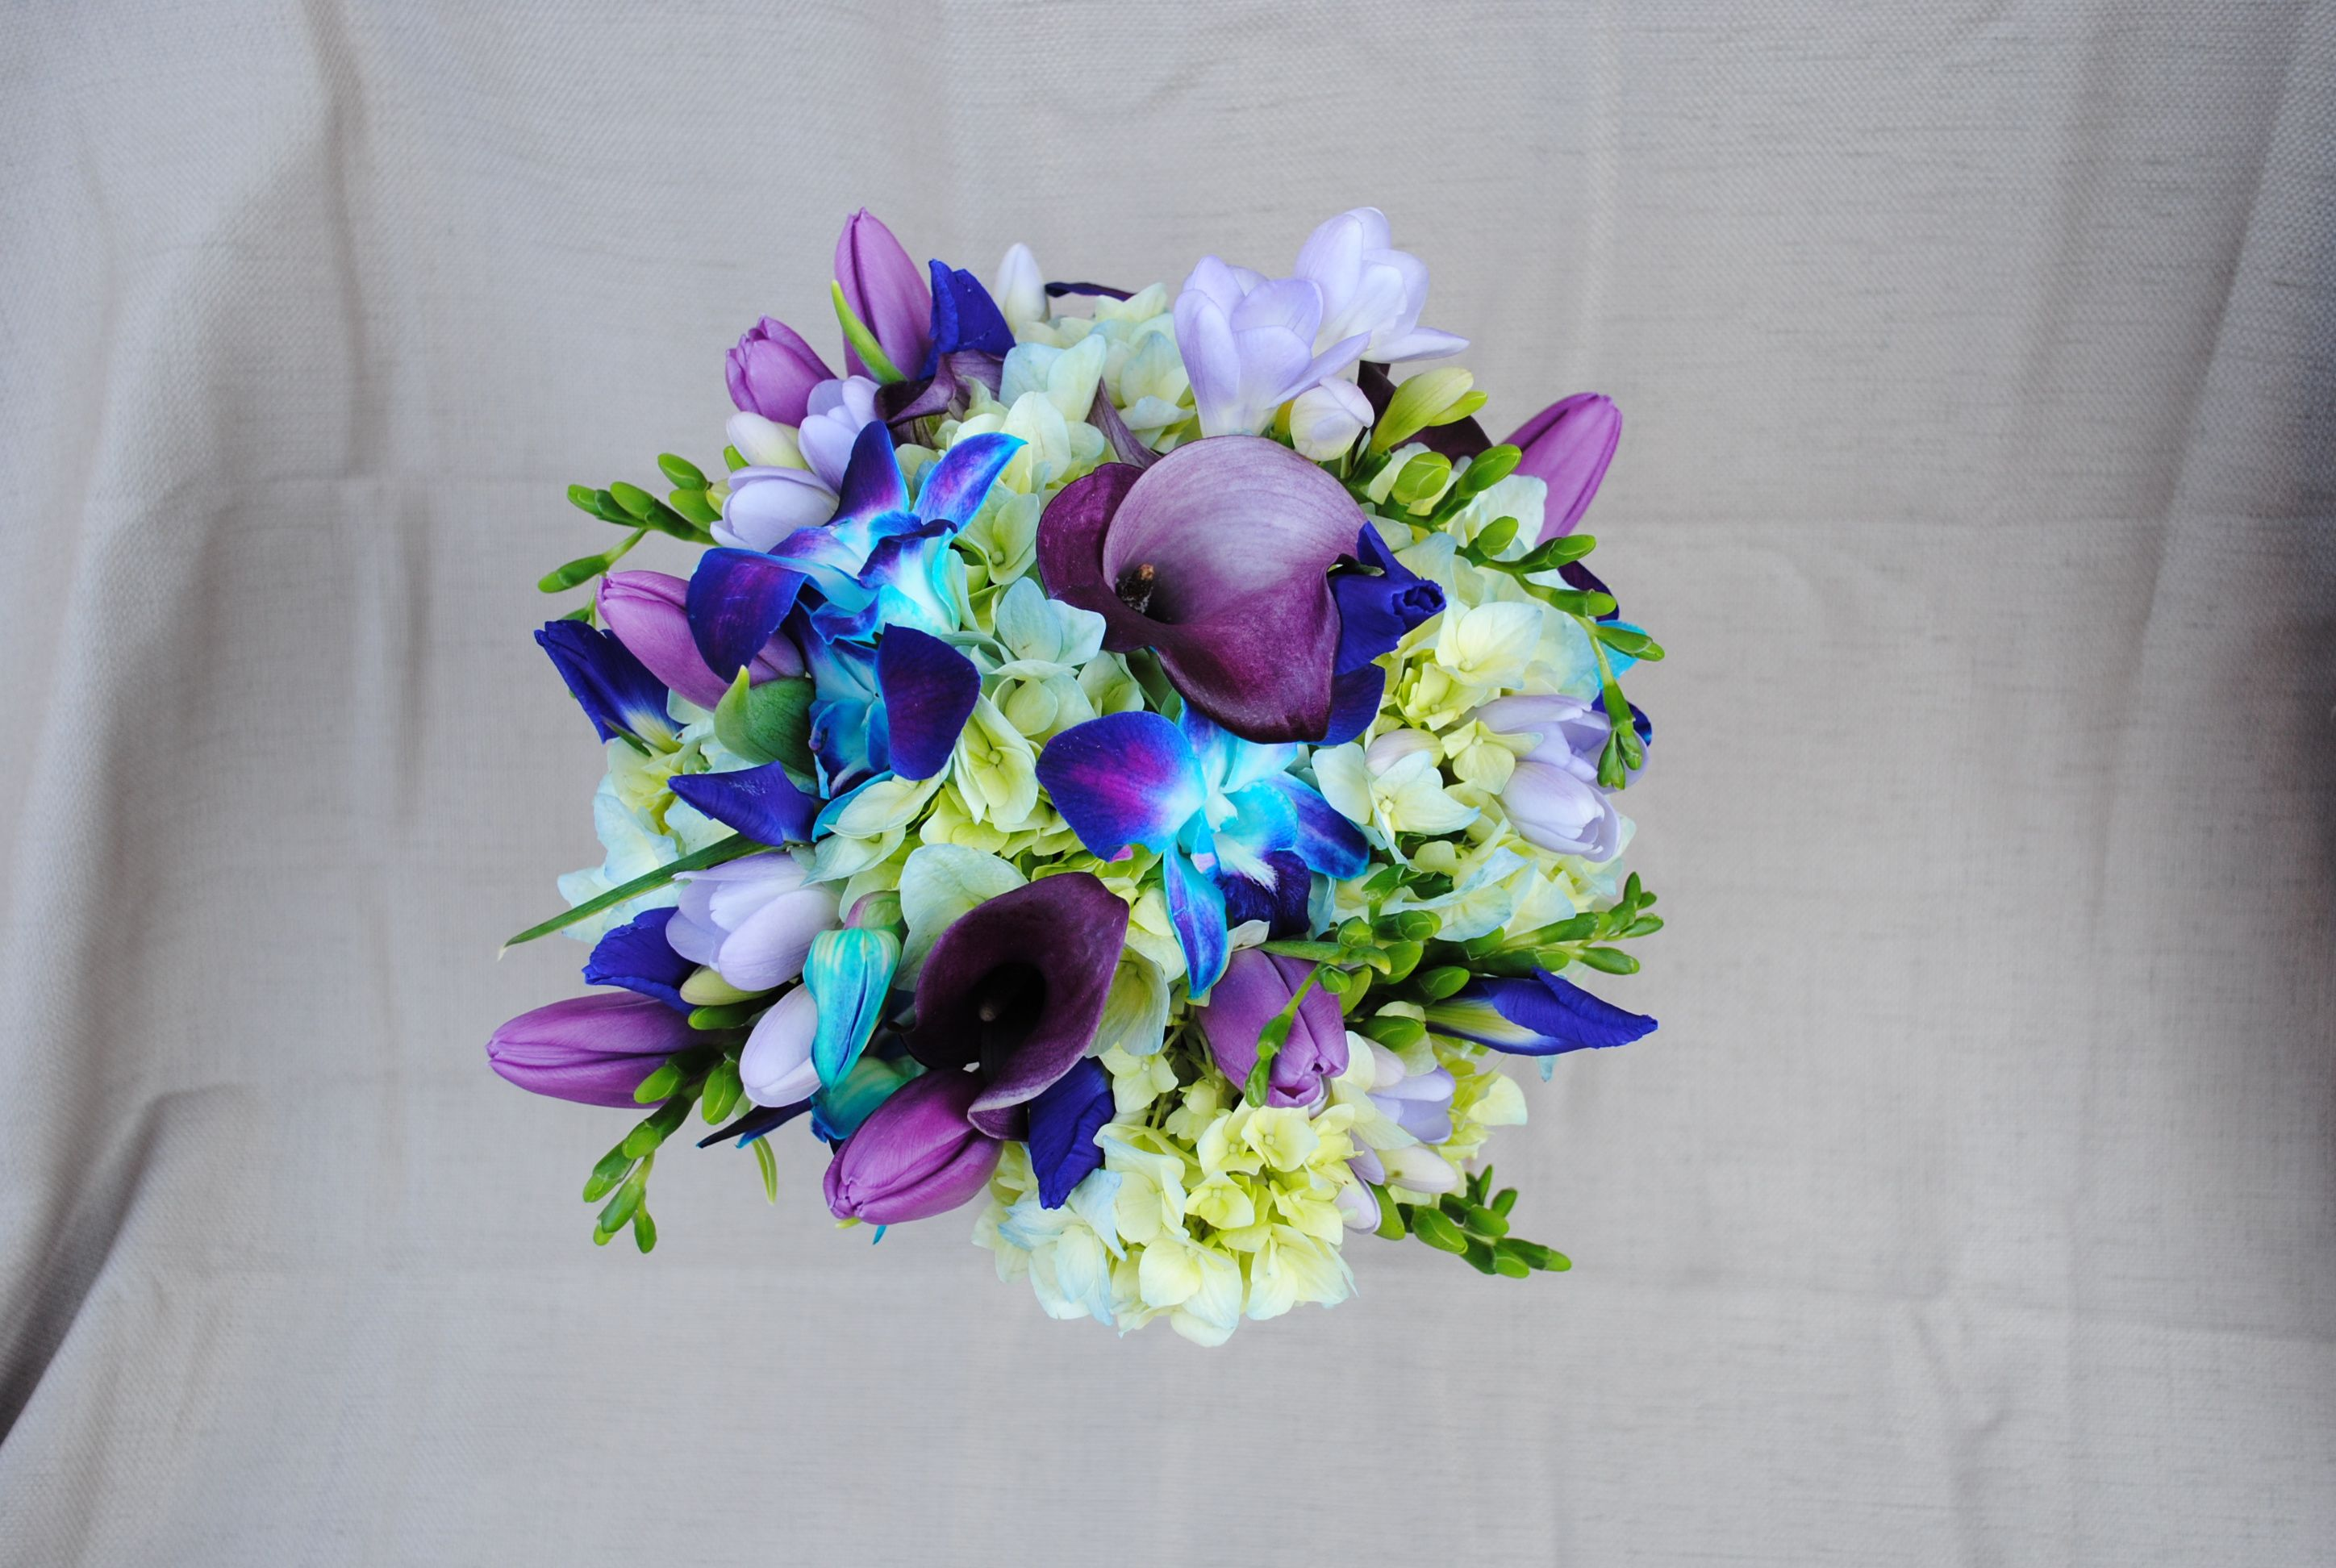 Pin by terra oubrien on wedding bouquets and decorations peacock